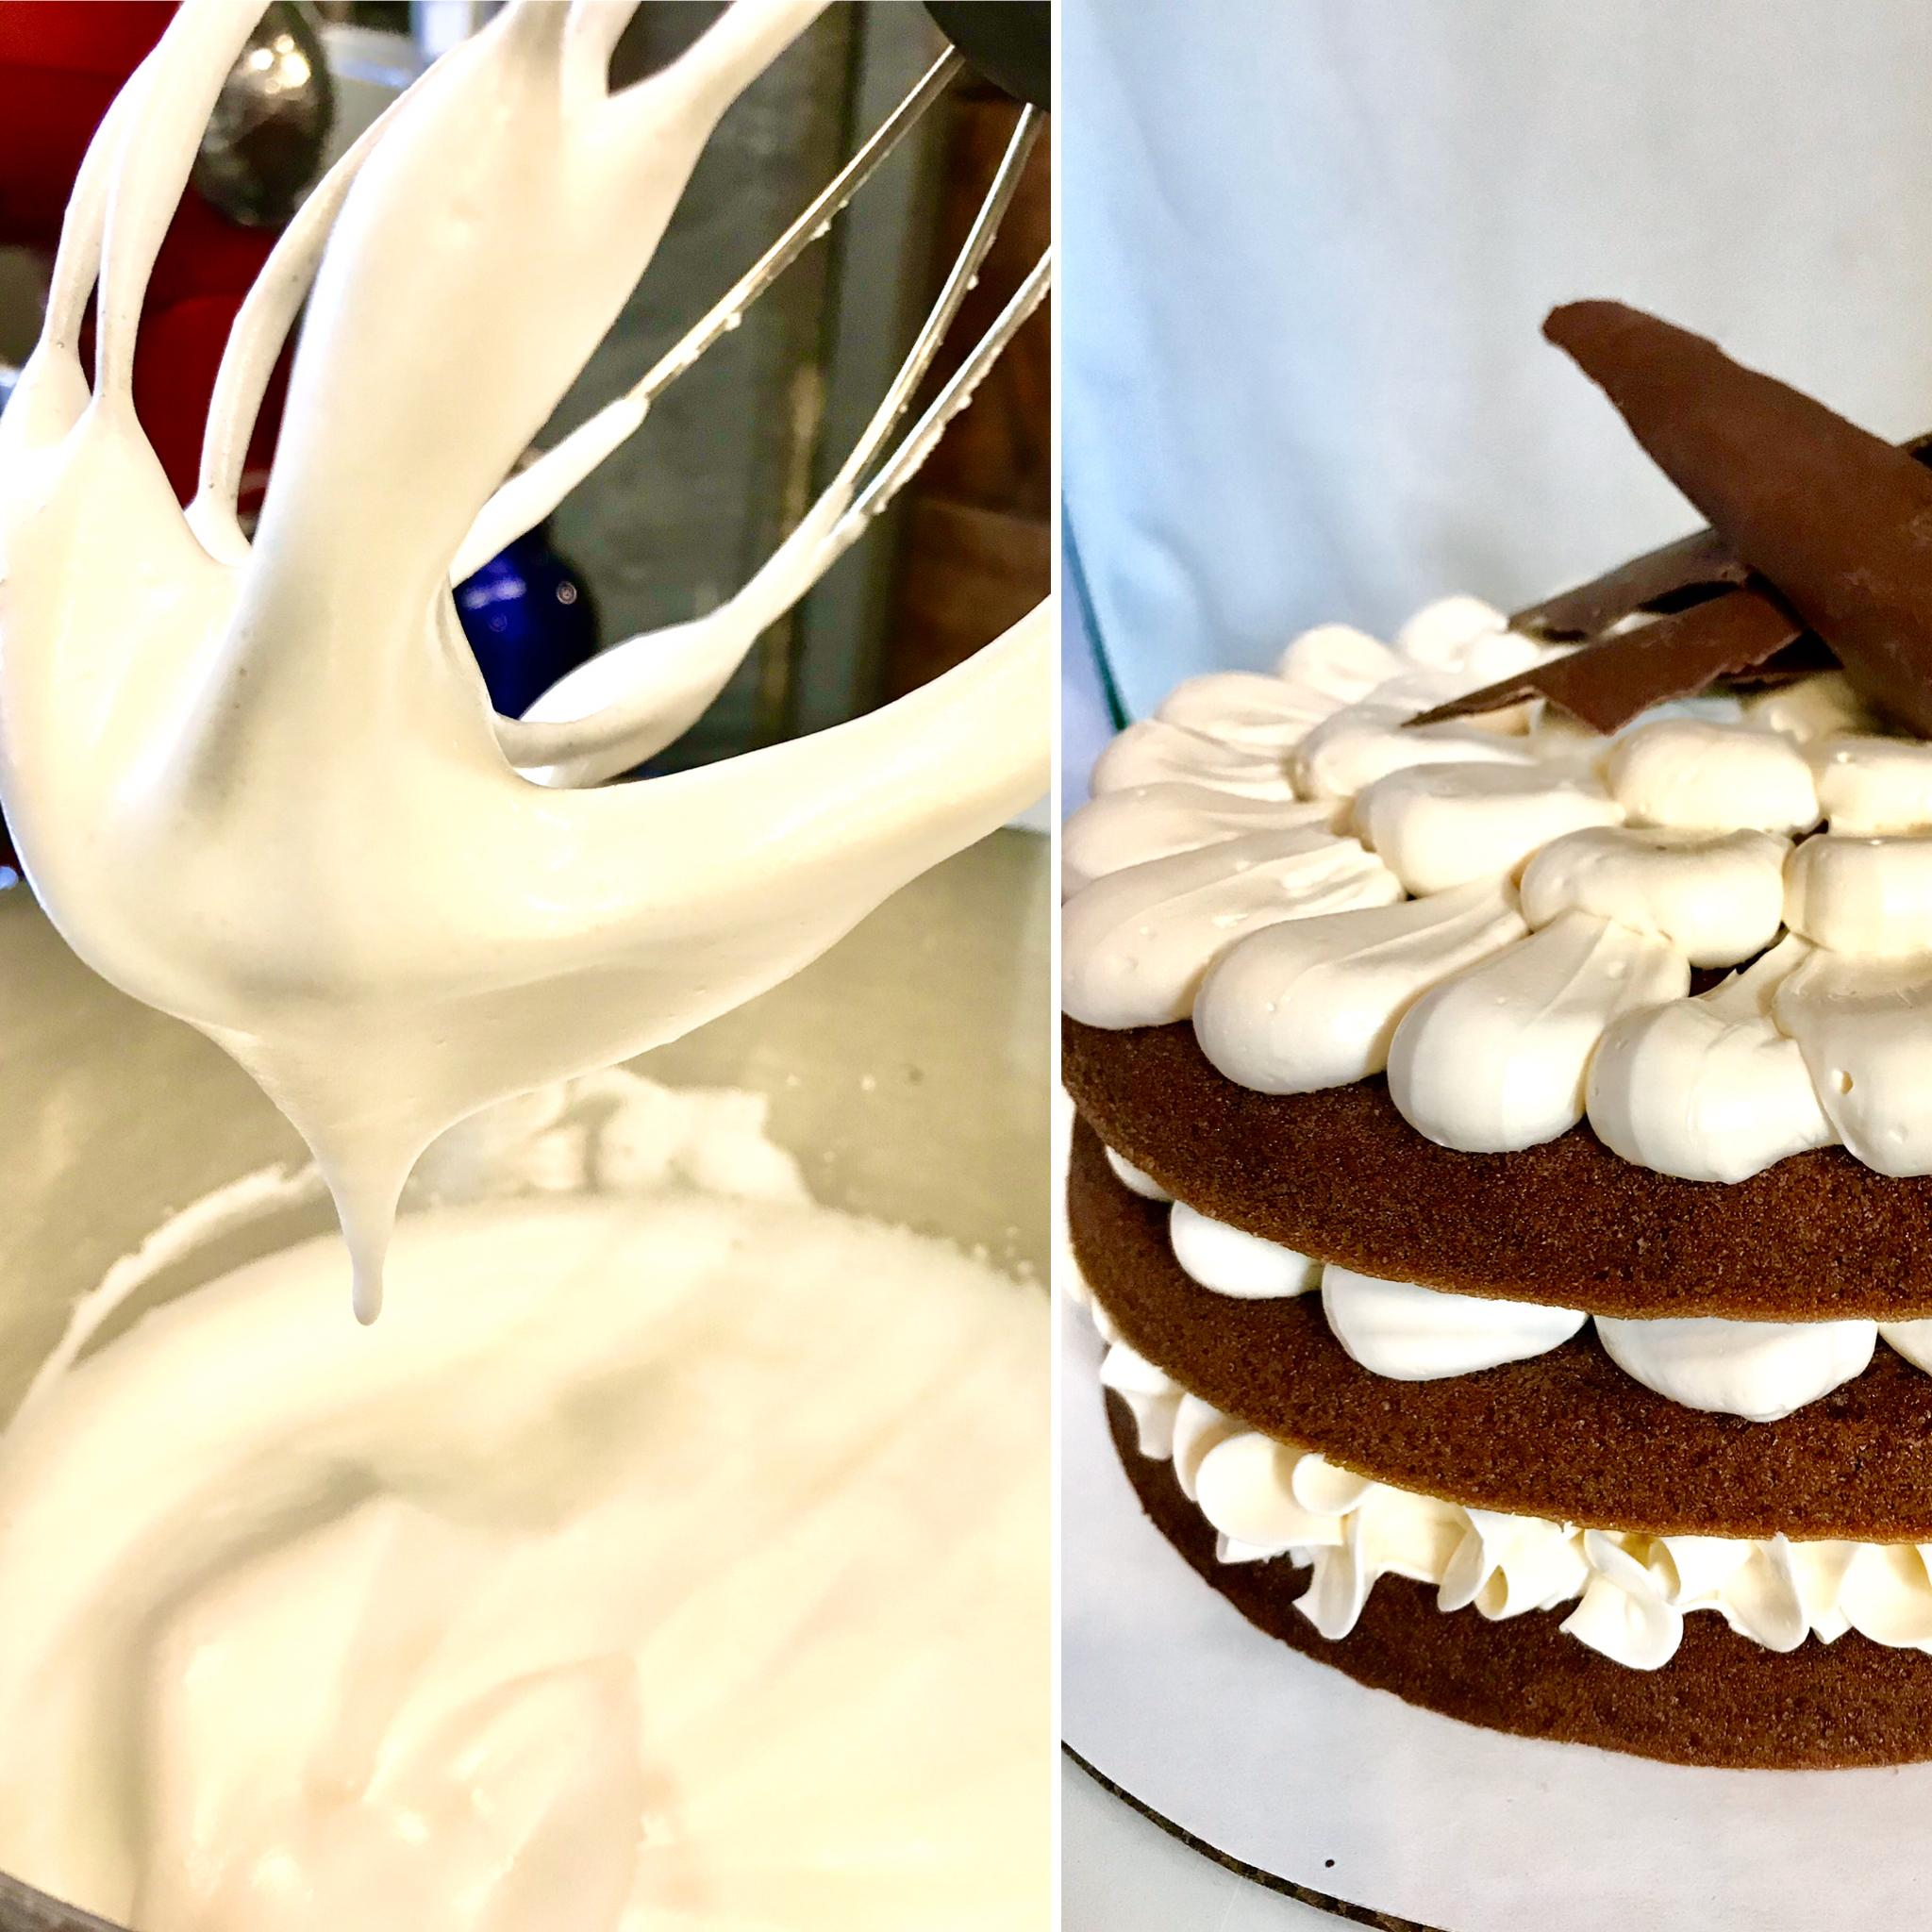 Baking & Decorating Classes (Dairy & Egg free)